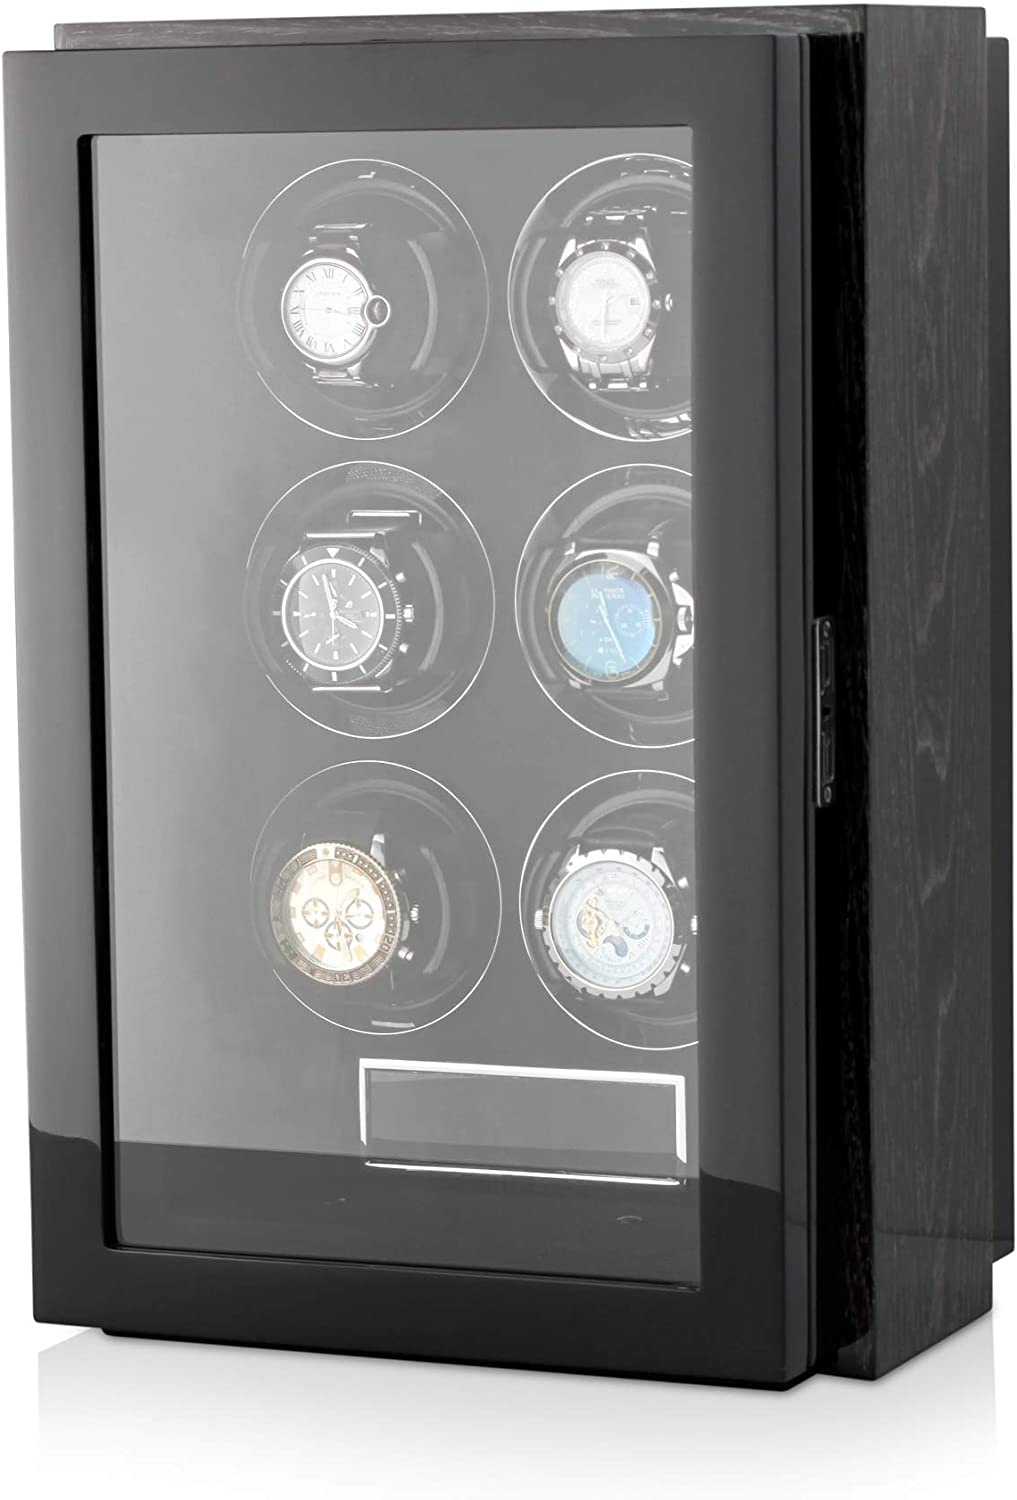 Watch Winder Box for Self-Winding 6 Automatic Watches with LED Case Backlight and LCD Display for All Watch Brands and All Watch Sizes